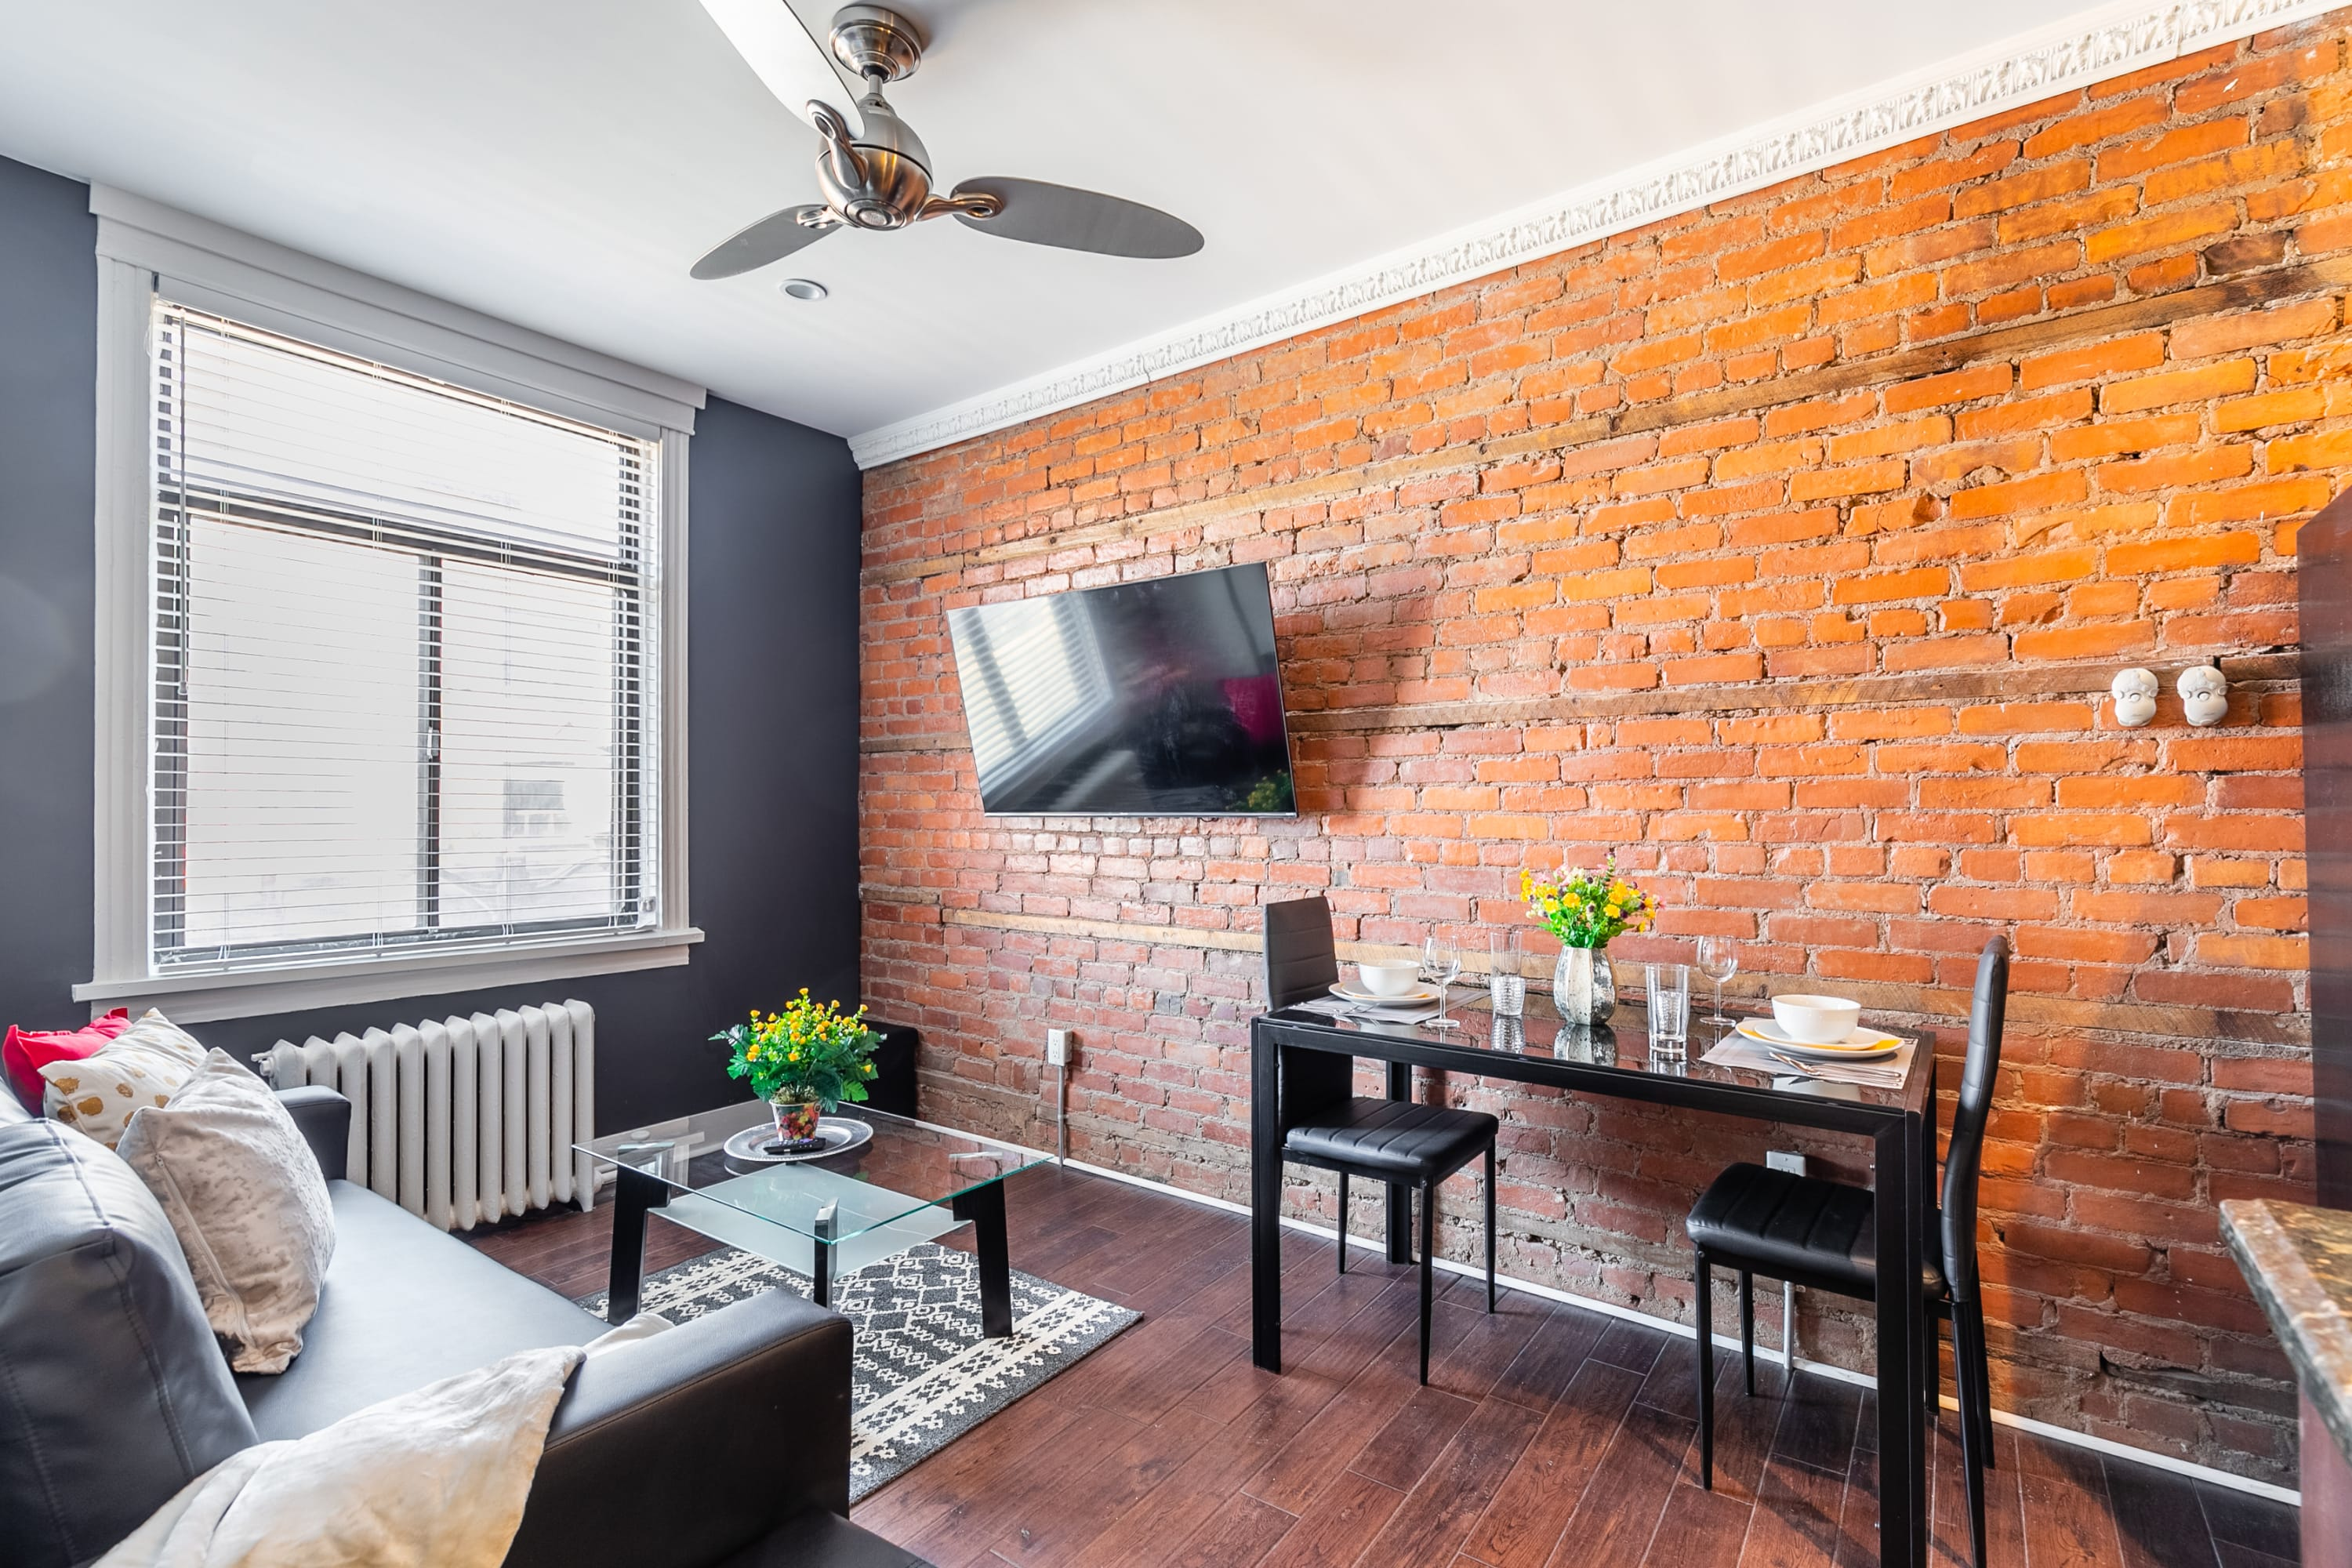 Upscale 2BR with King Bed - Boutique Apartment - PRIME Location!